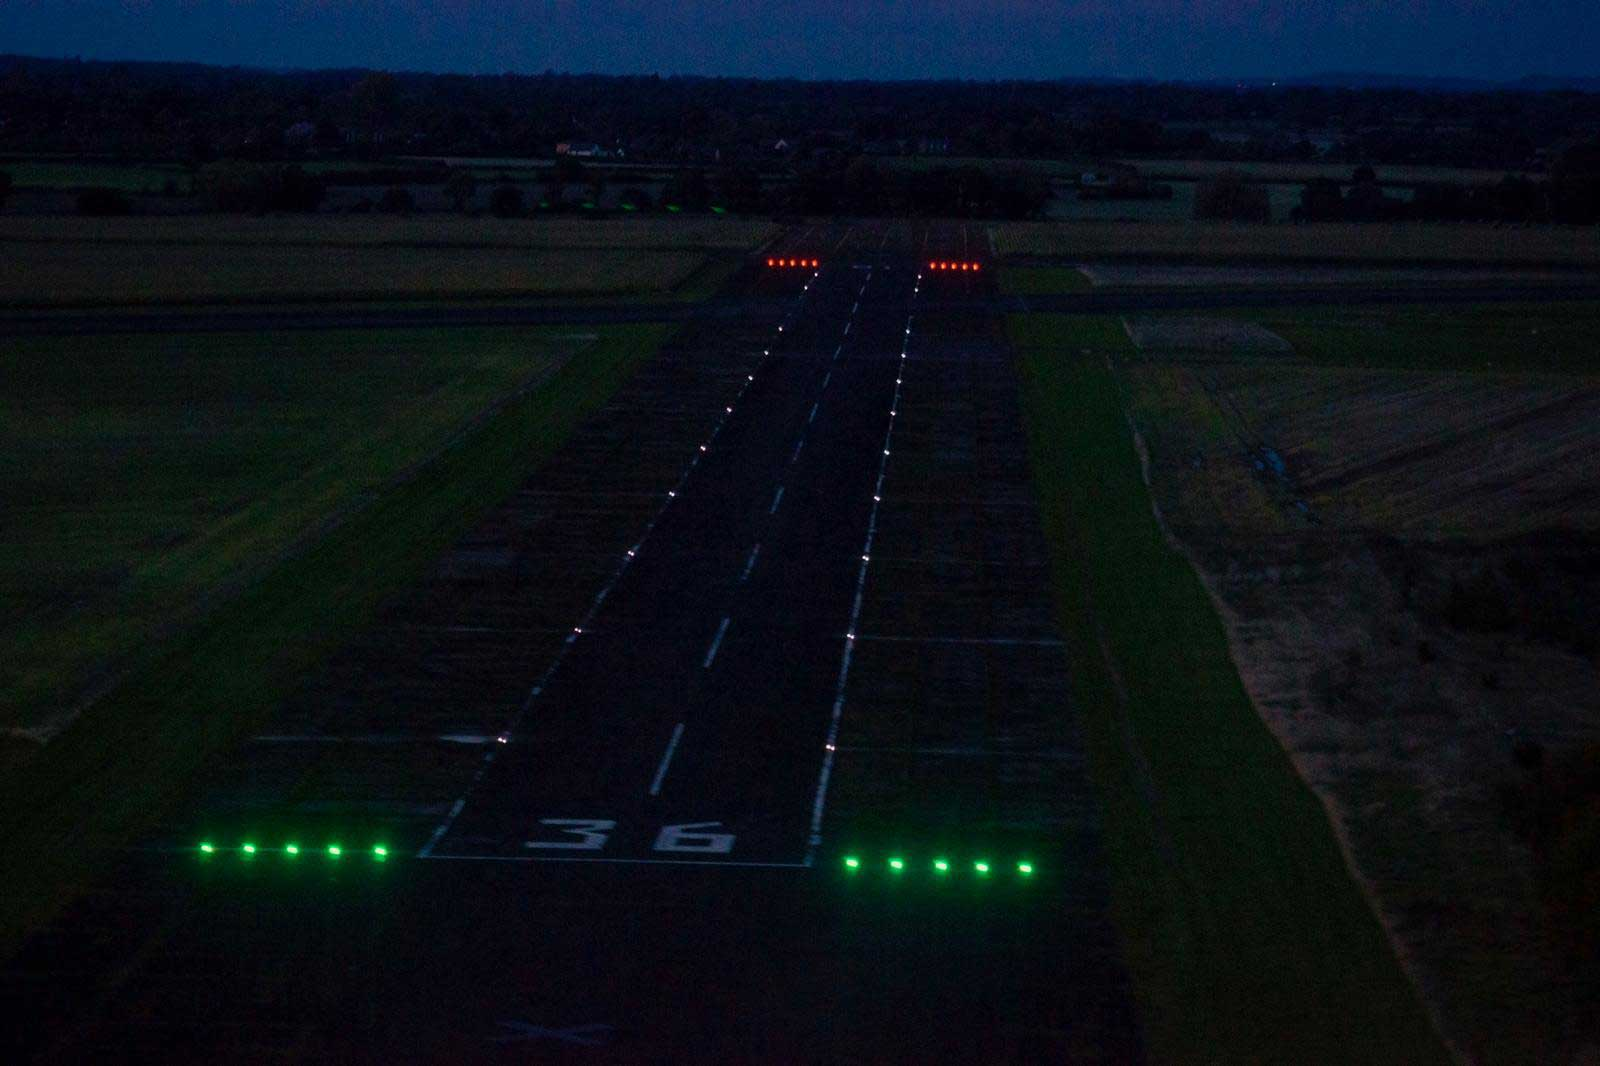 Sleap LED runway lights